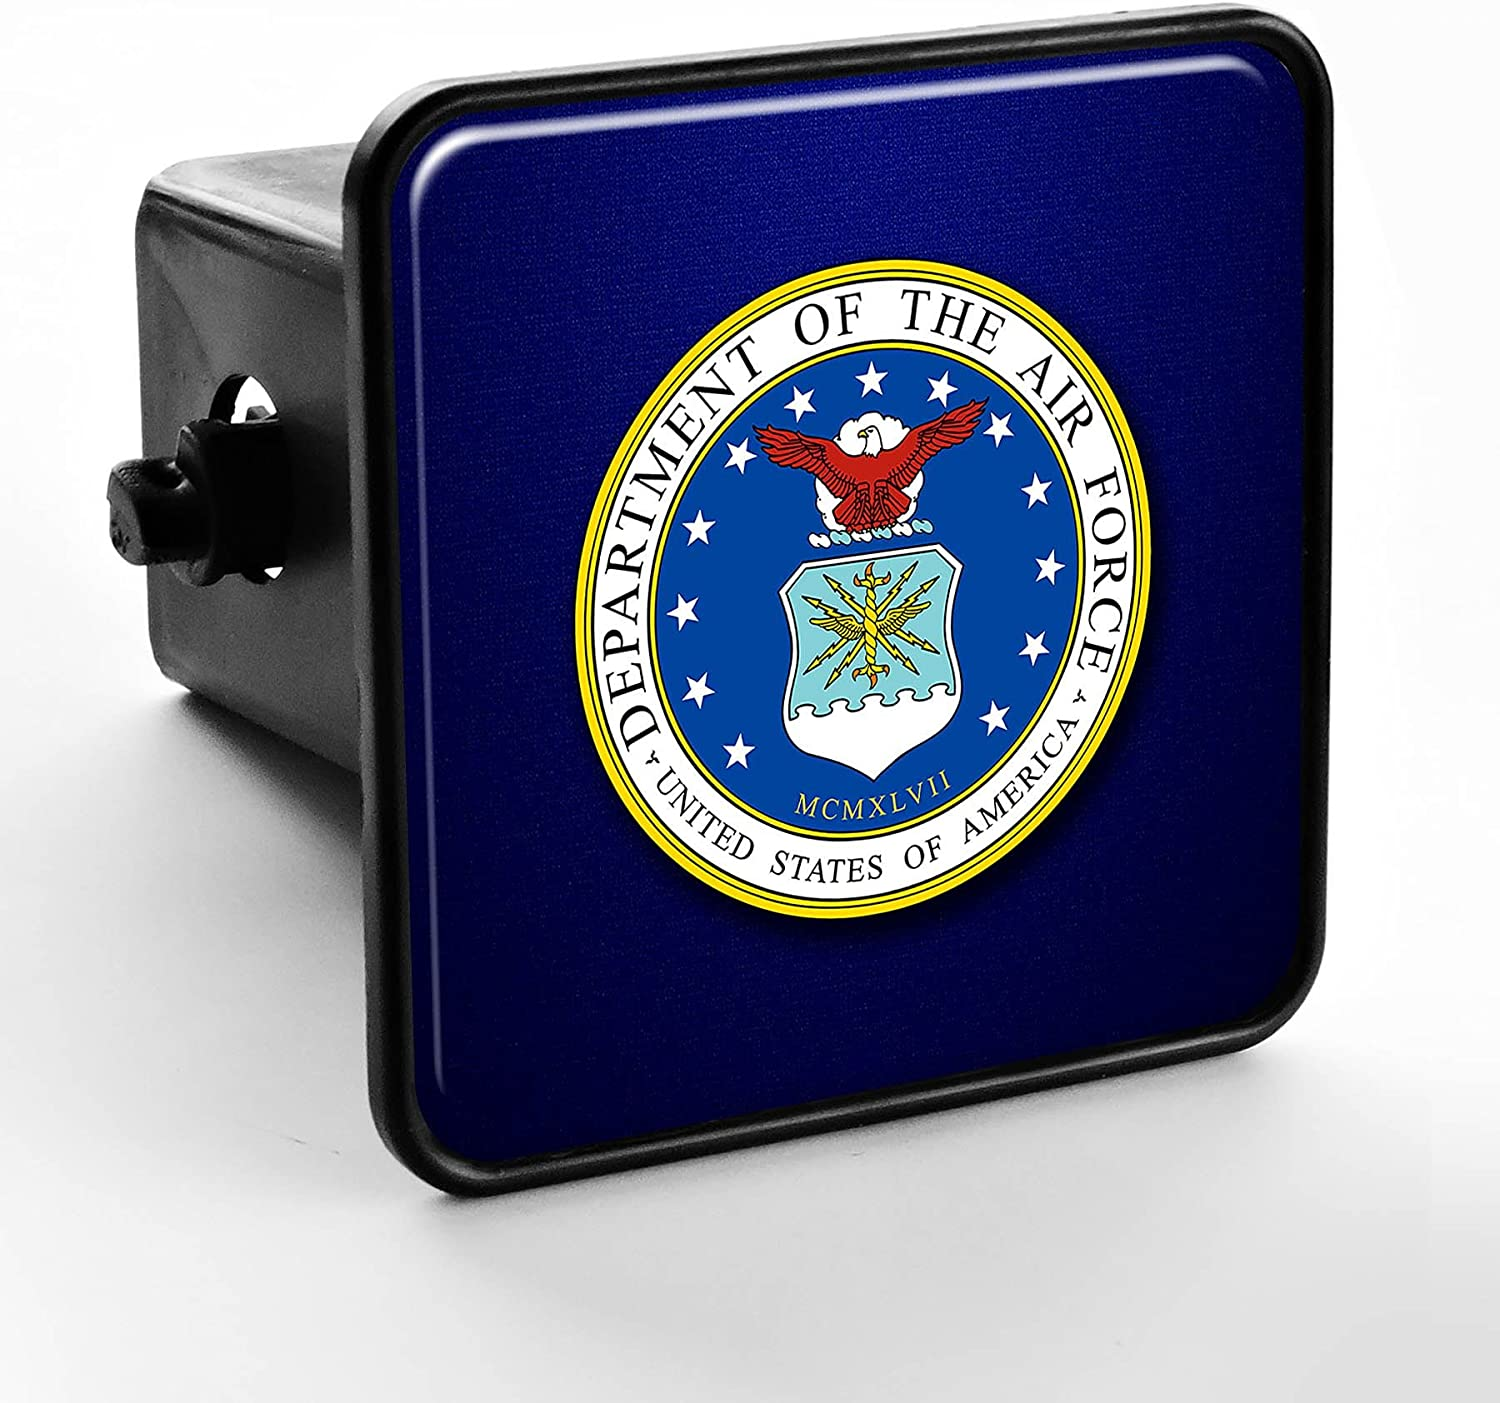 US Department of The Air Force Seal ExpressItBest Trailer Hitch Cover